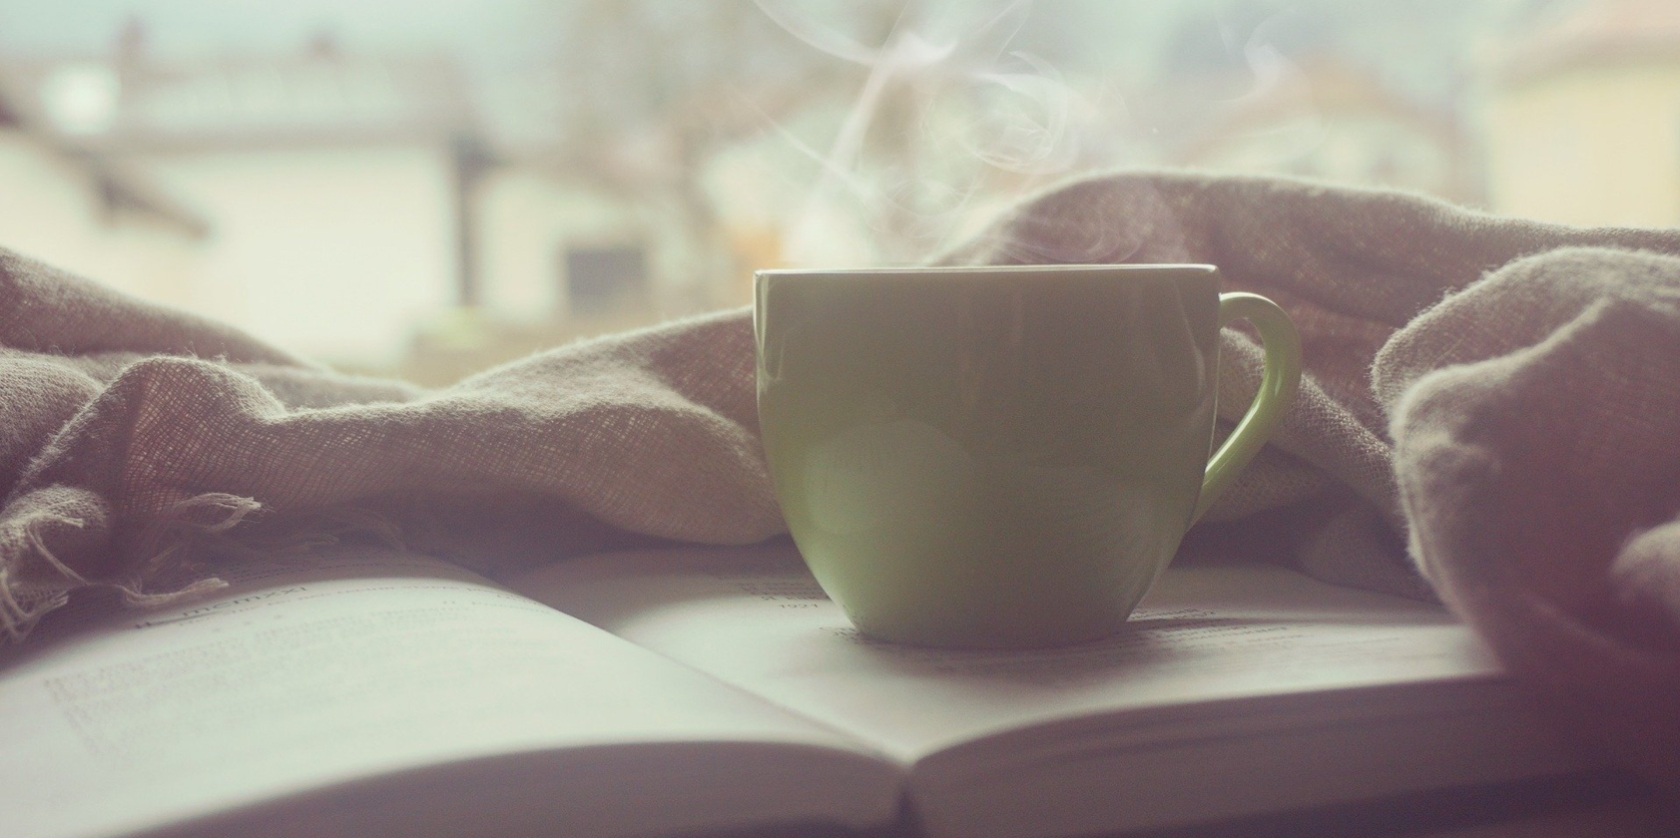 Coffee cup on an open book